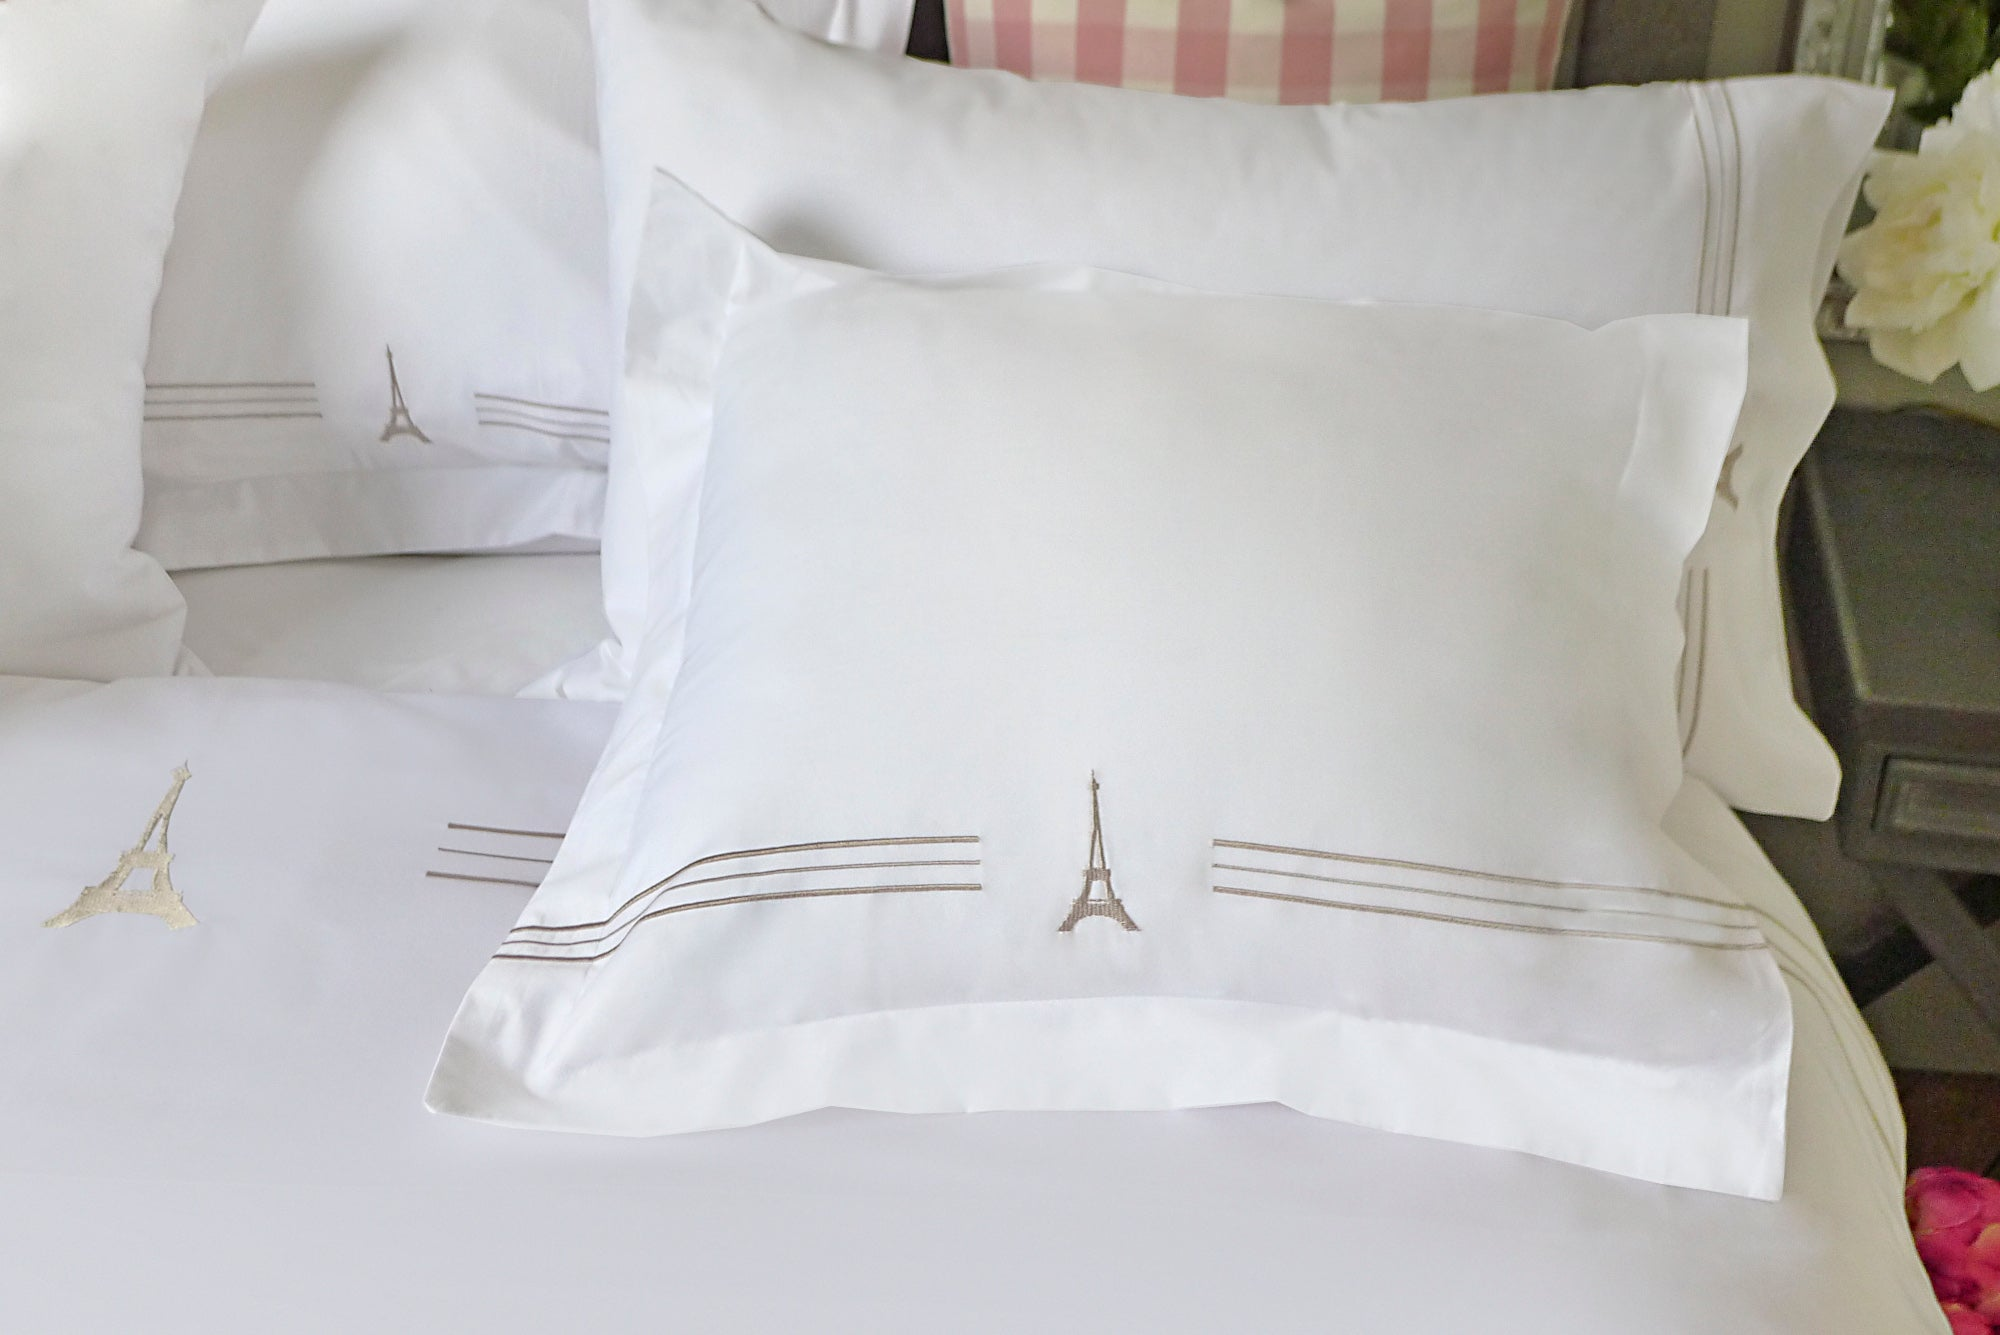 Eiffel Tower Square Throw Pillow Cover (1 pc.) 60% off!!! Usually $50, now only $19!